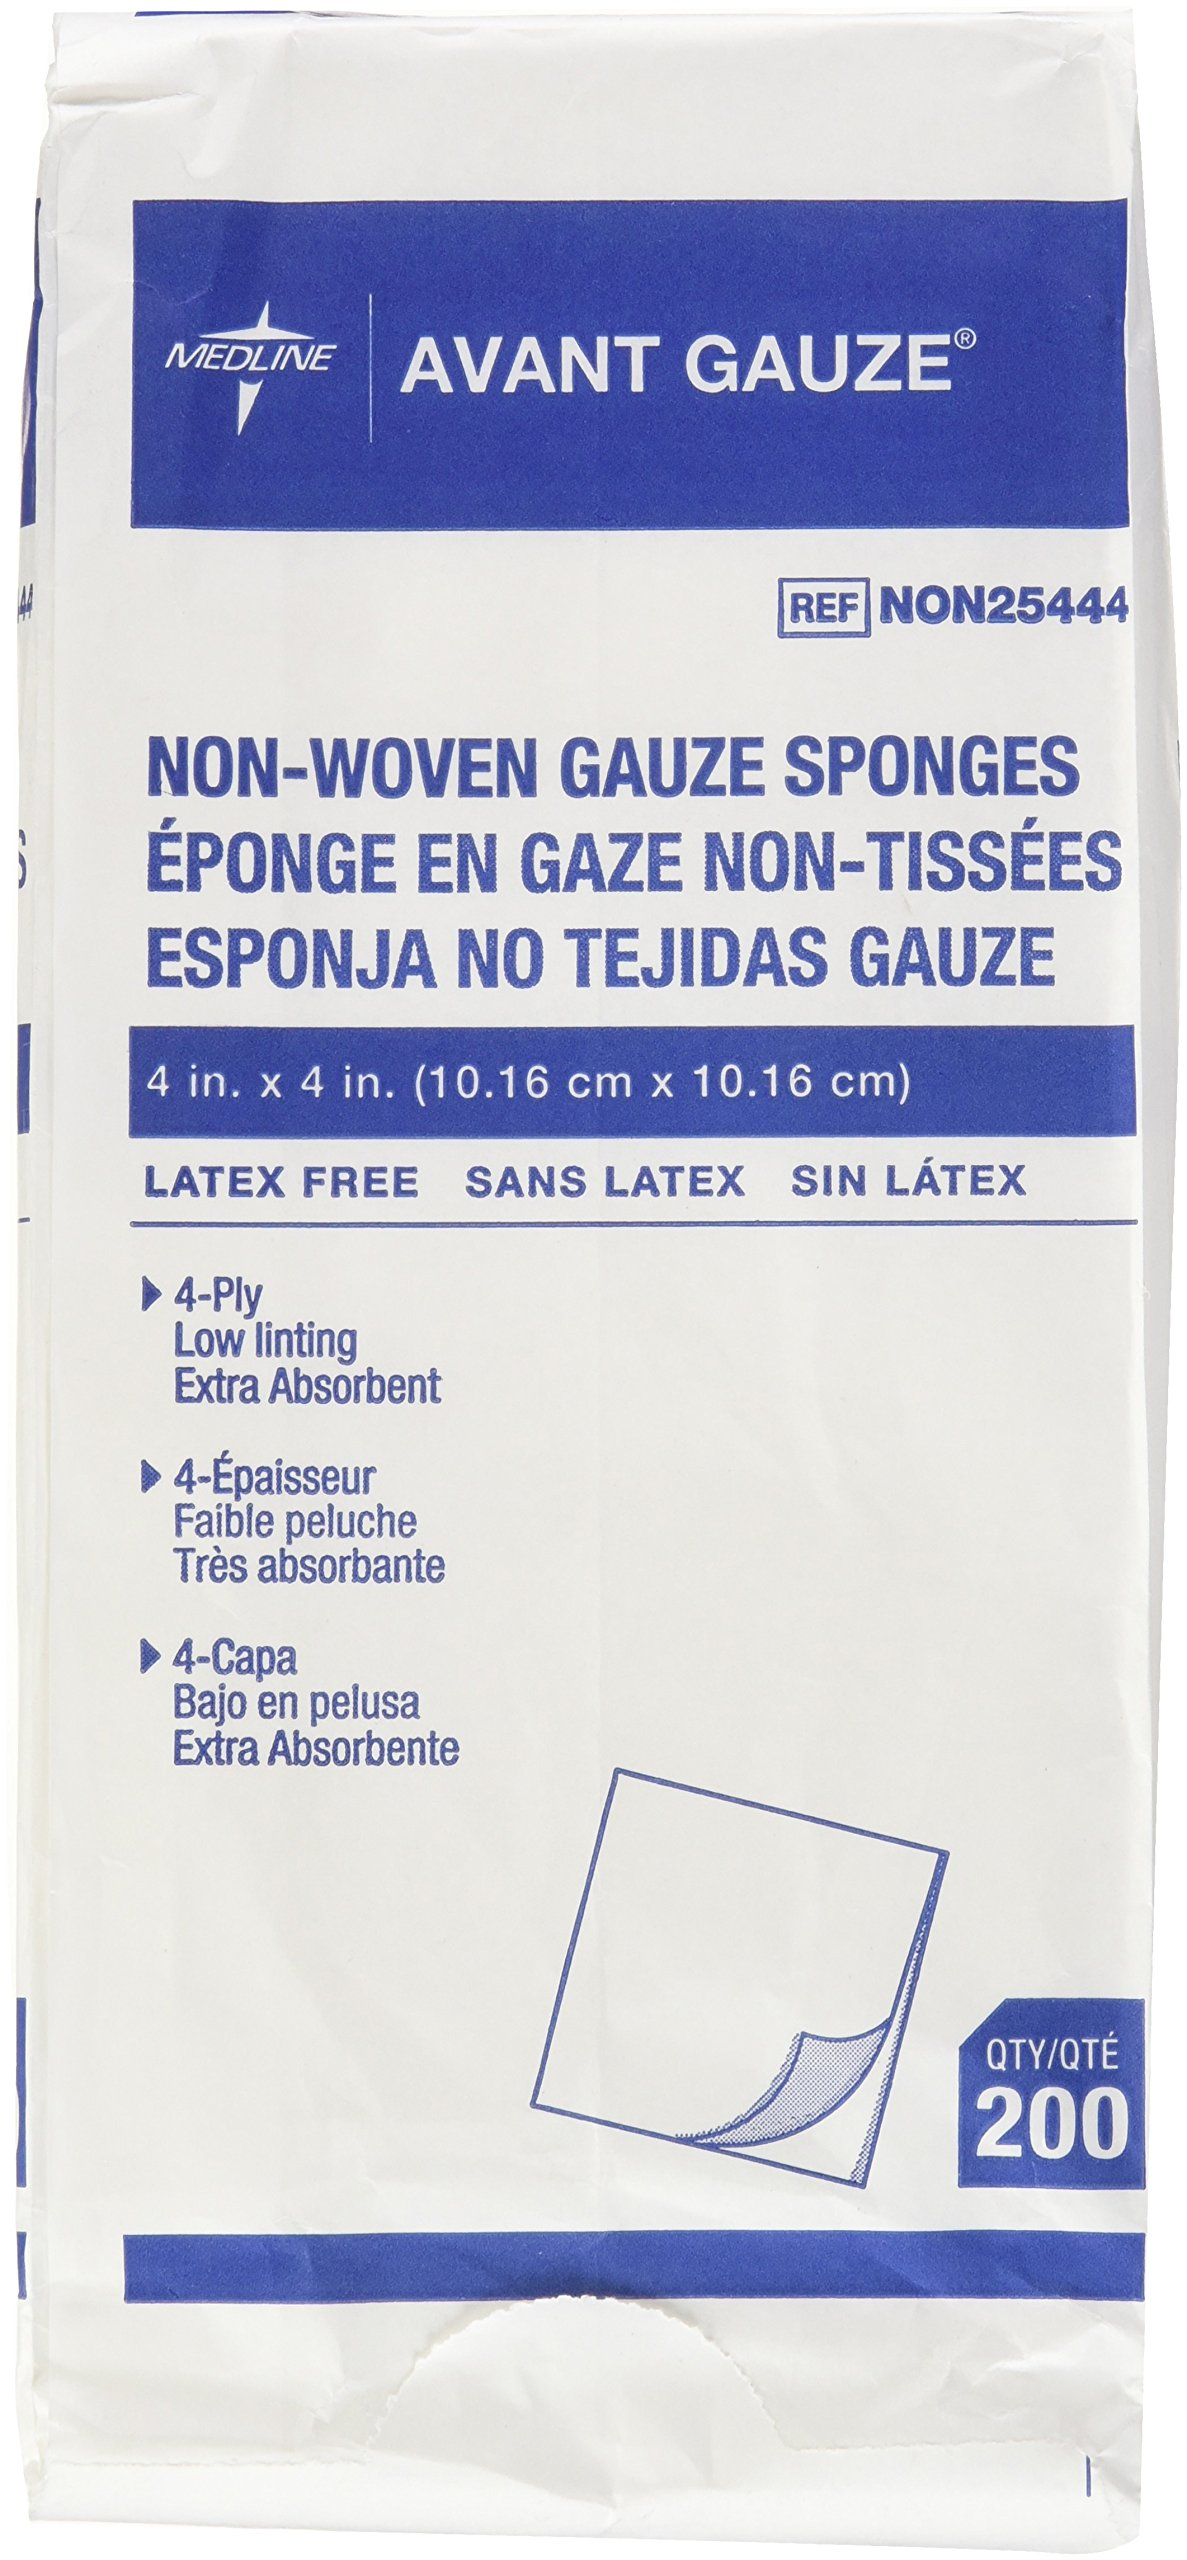 Medline Avant Gauze, Non-Woven and Non-Sterile Sponges, 4 X 4